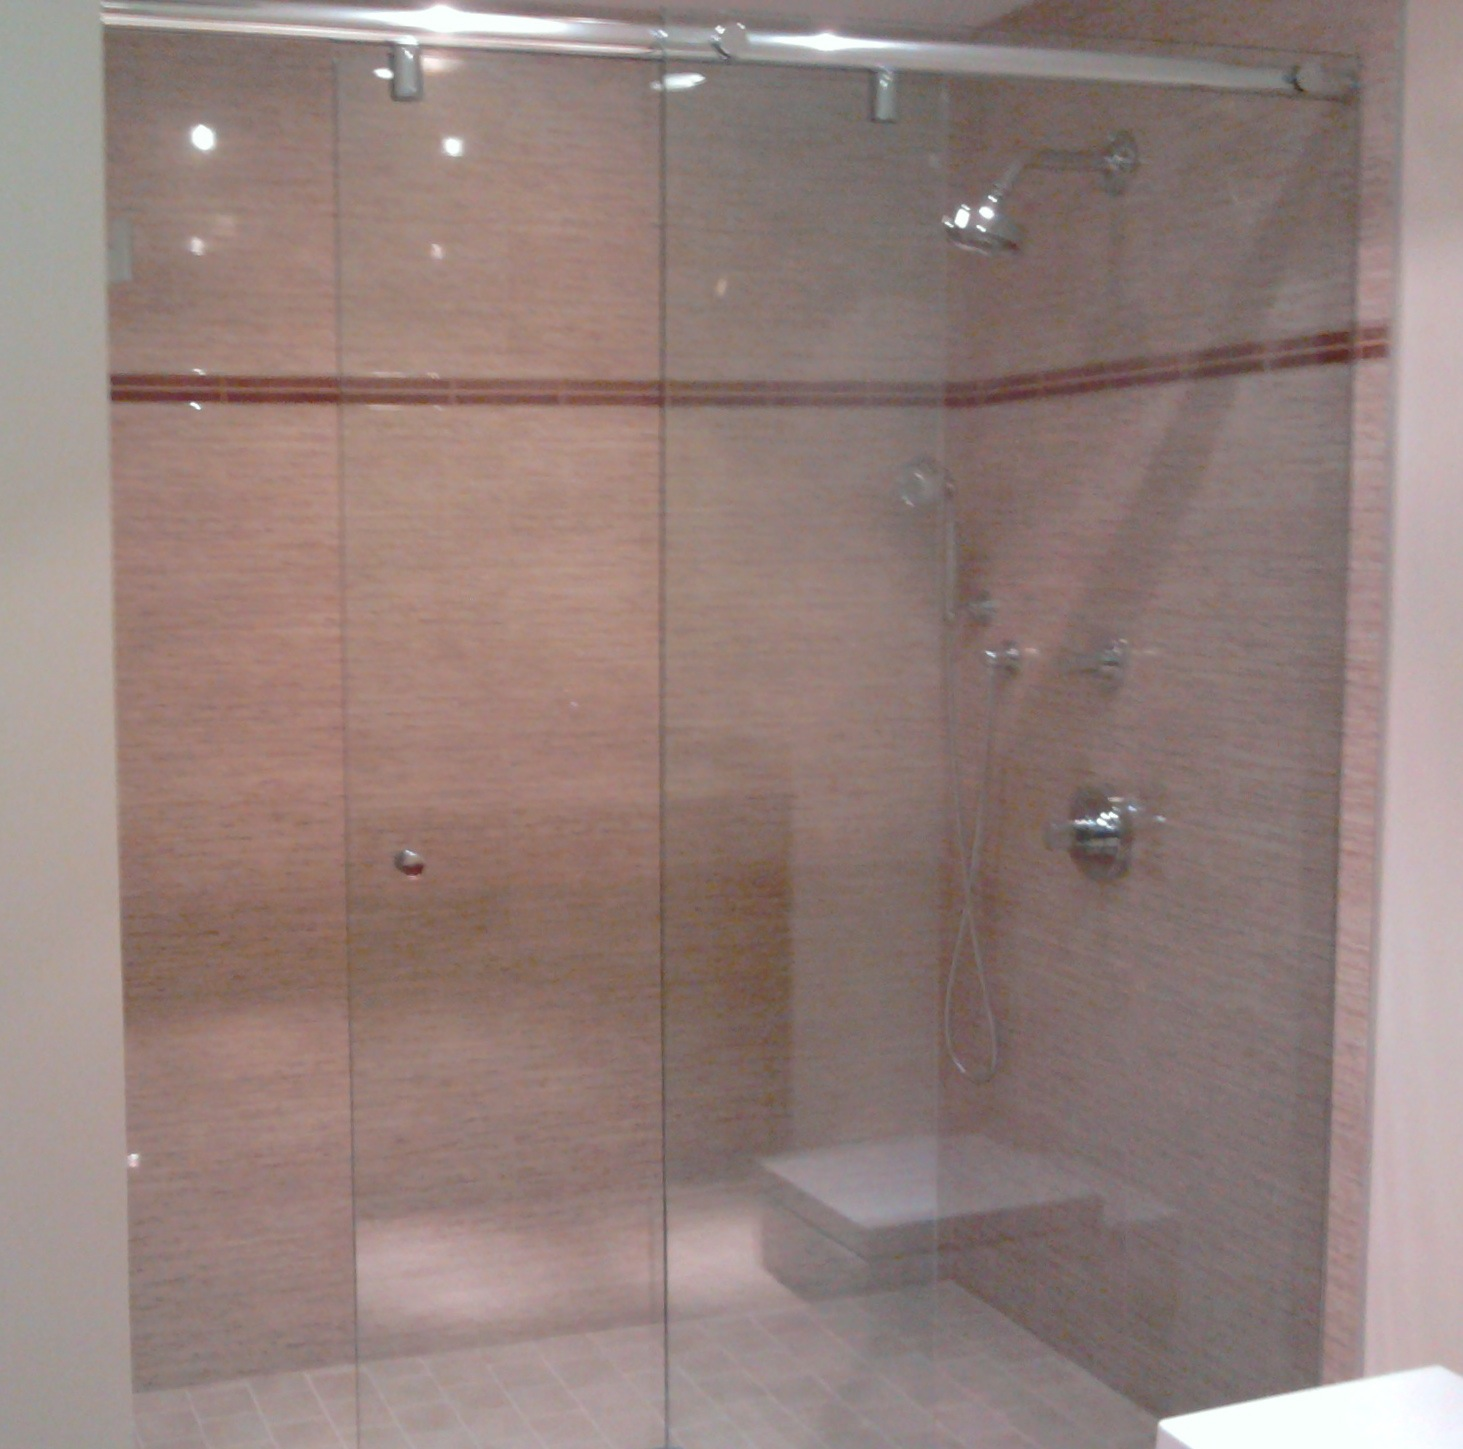 Frameless Glass Shower Units Are Popular In Modern Dallas Homes